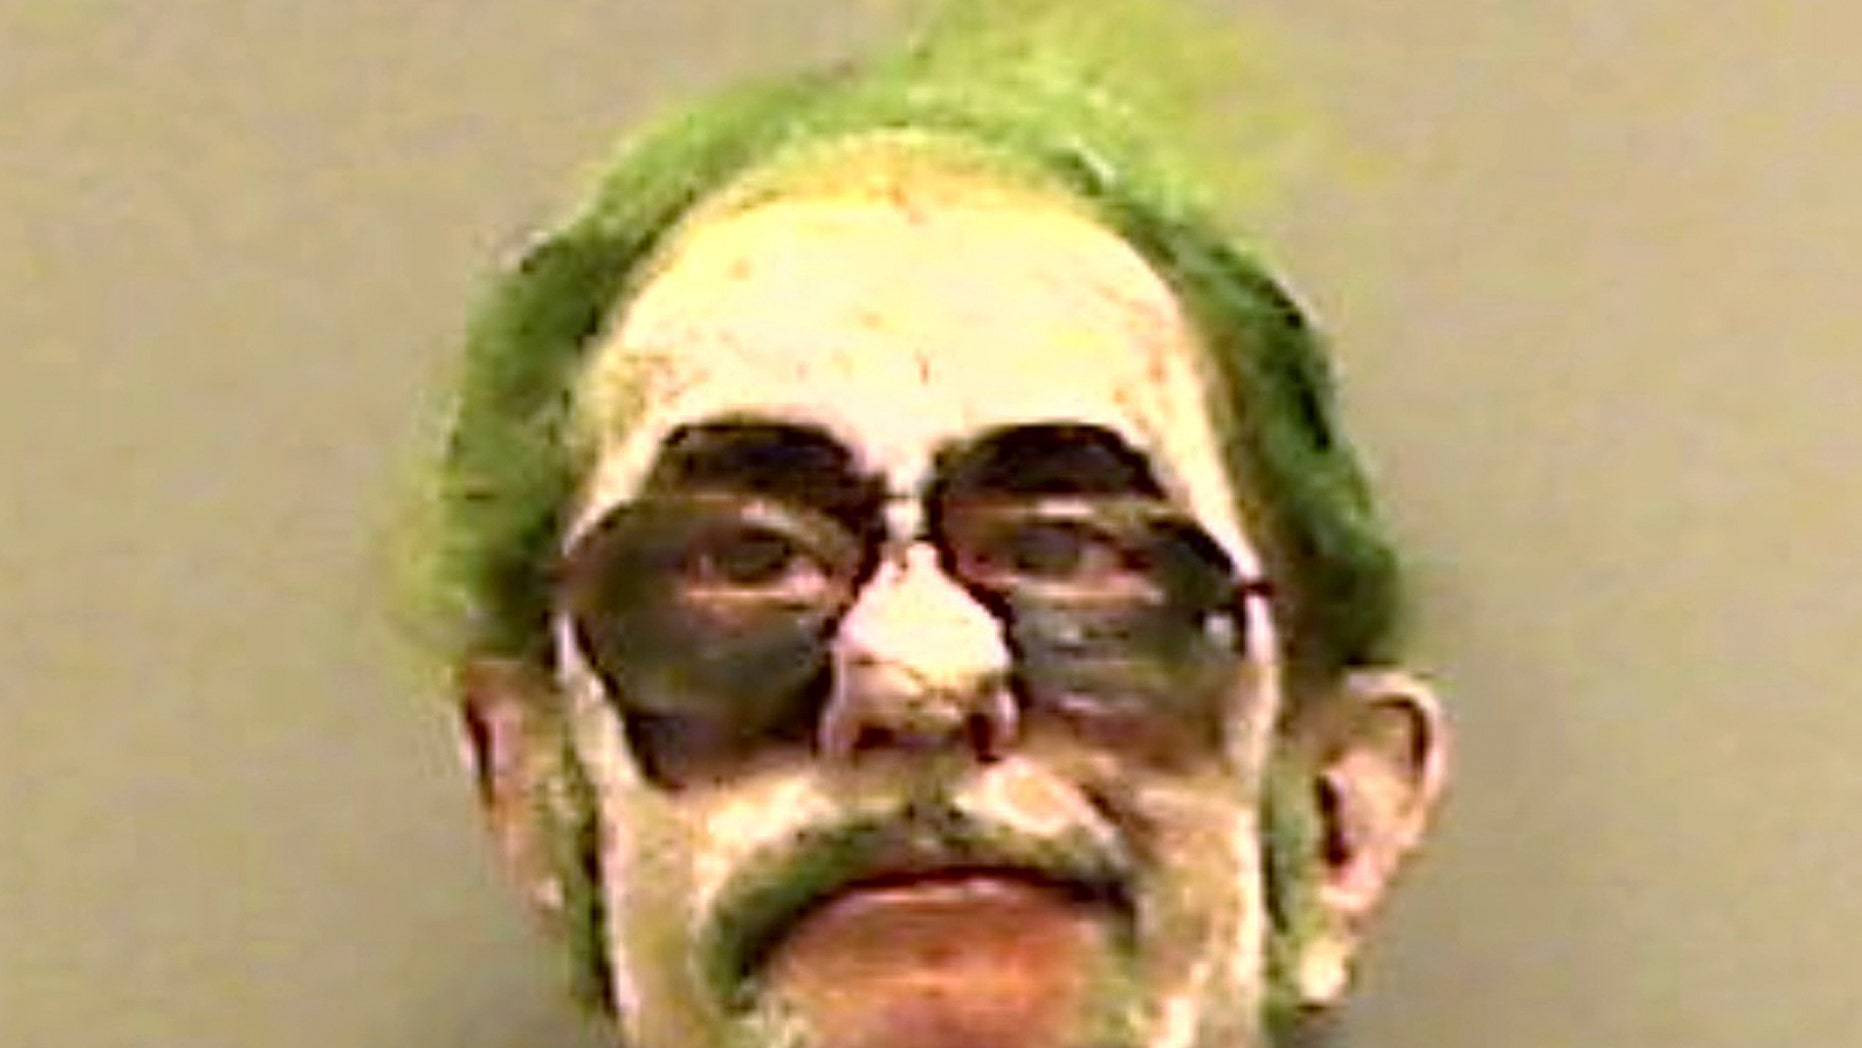 """This booking photo provided by the Somerset County Sheriff's Department shows Dennis Lalime, arrested Sunday, Oct. 20, 2013, when returning from a Halloween party made up as """"The Joker,"""" and charged with drunken driving after crashing his car in Pittsfield, Maine. (AP Photo/ Somerset County Sheriff's Department)"""